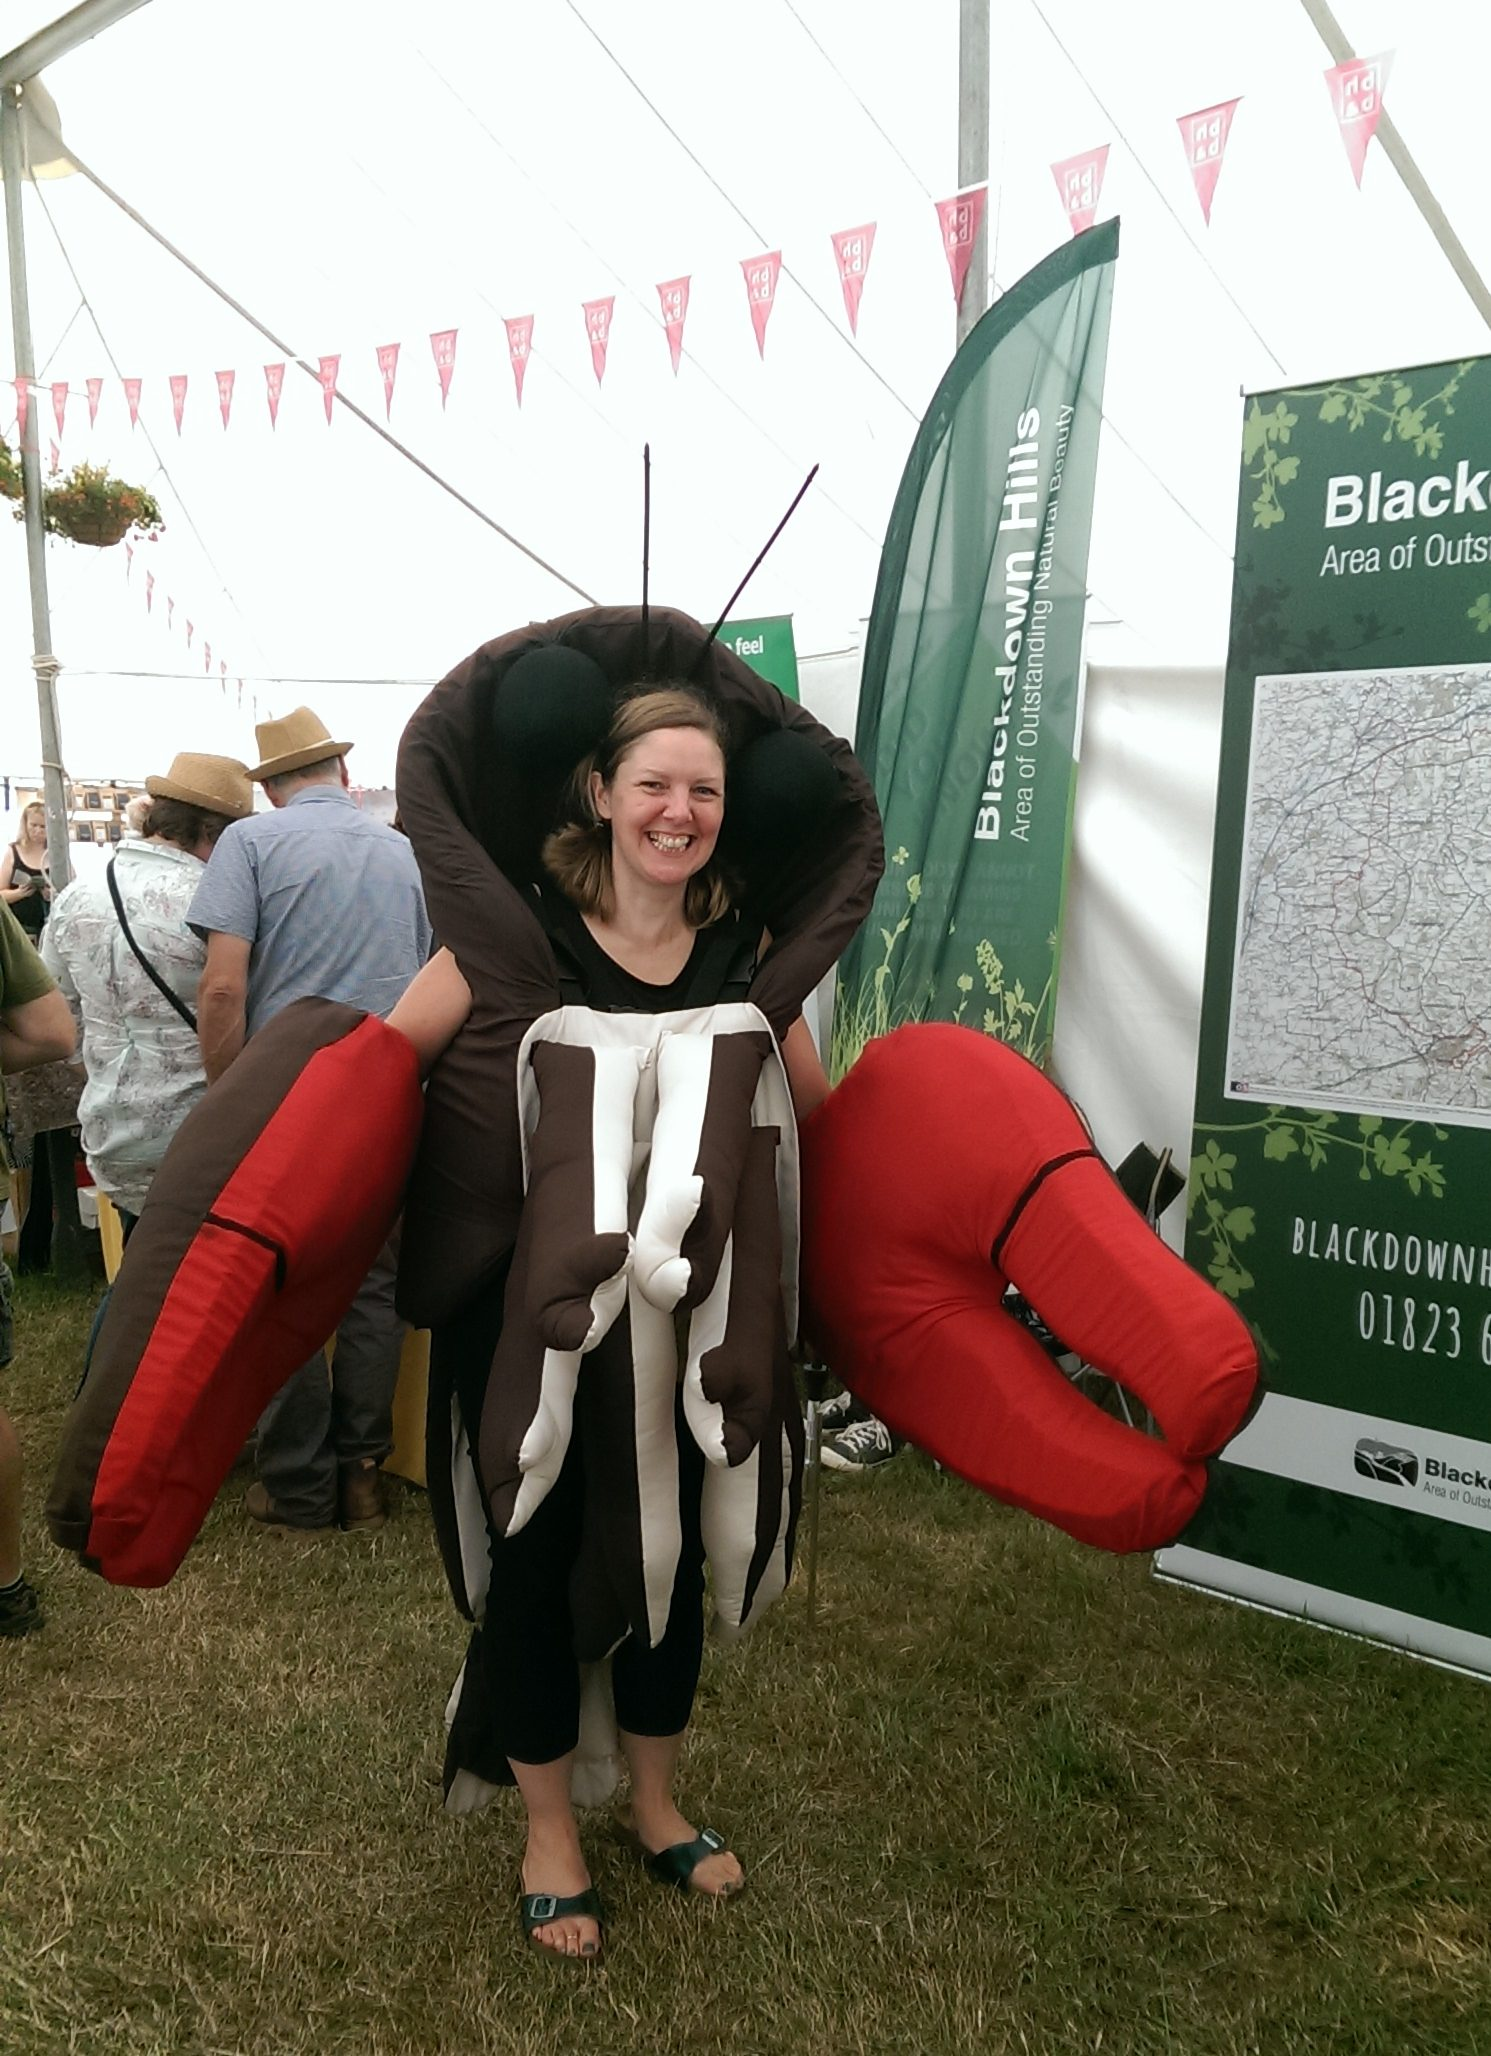 Communications Officer, Clare Groom, dressed up as a signal crayfish